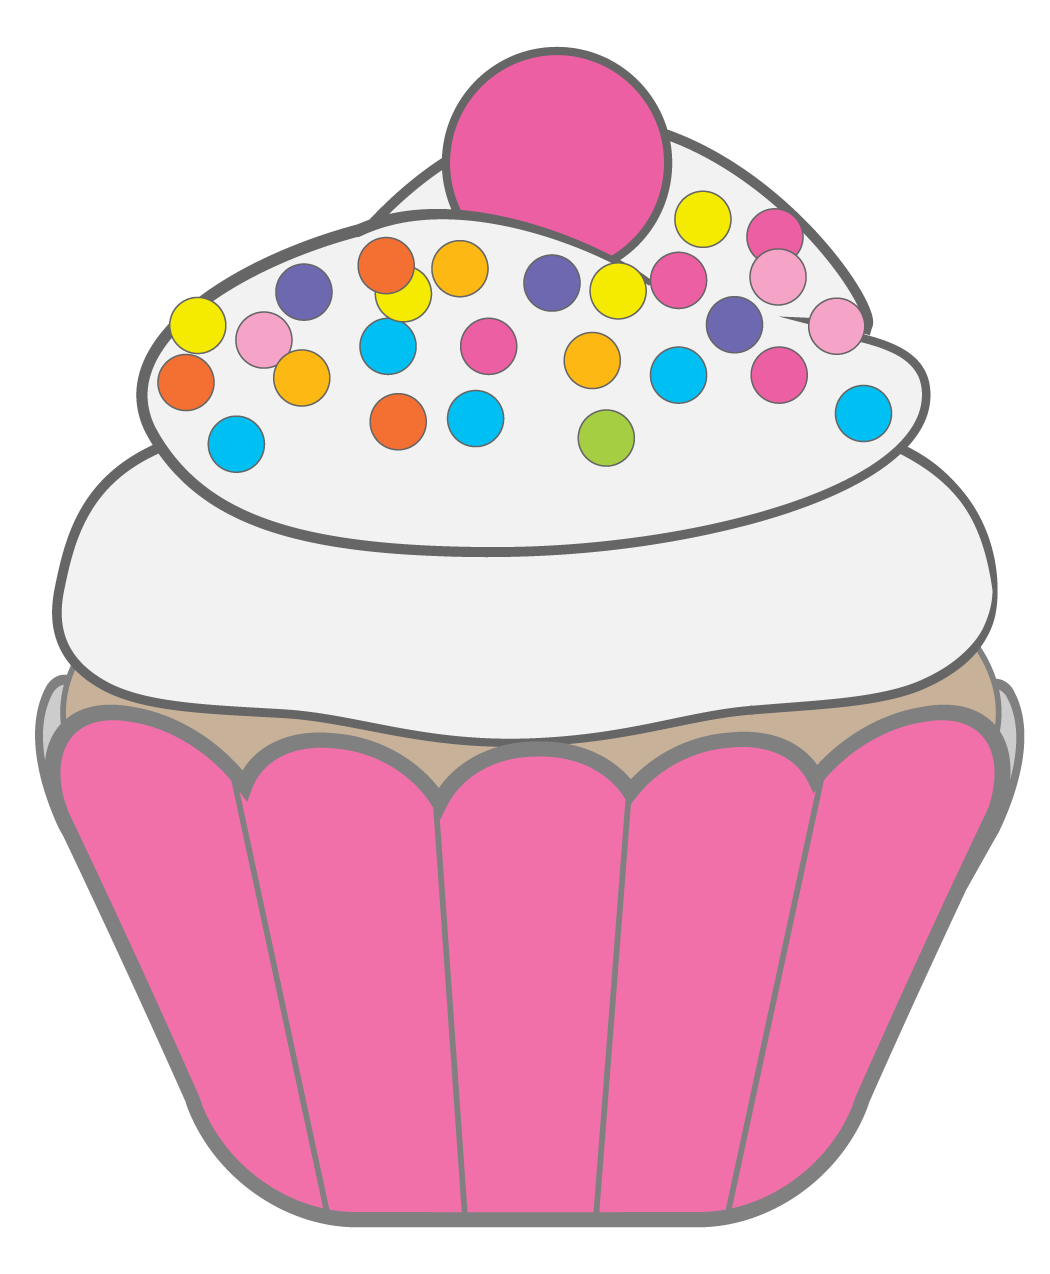 Drawn cupcake silhouette Clipart Images Happy Clipart happy%20birthday%20cupcake%20clipart